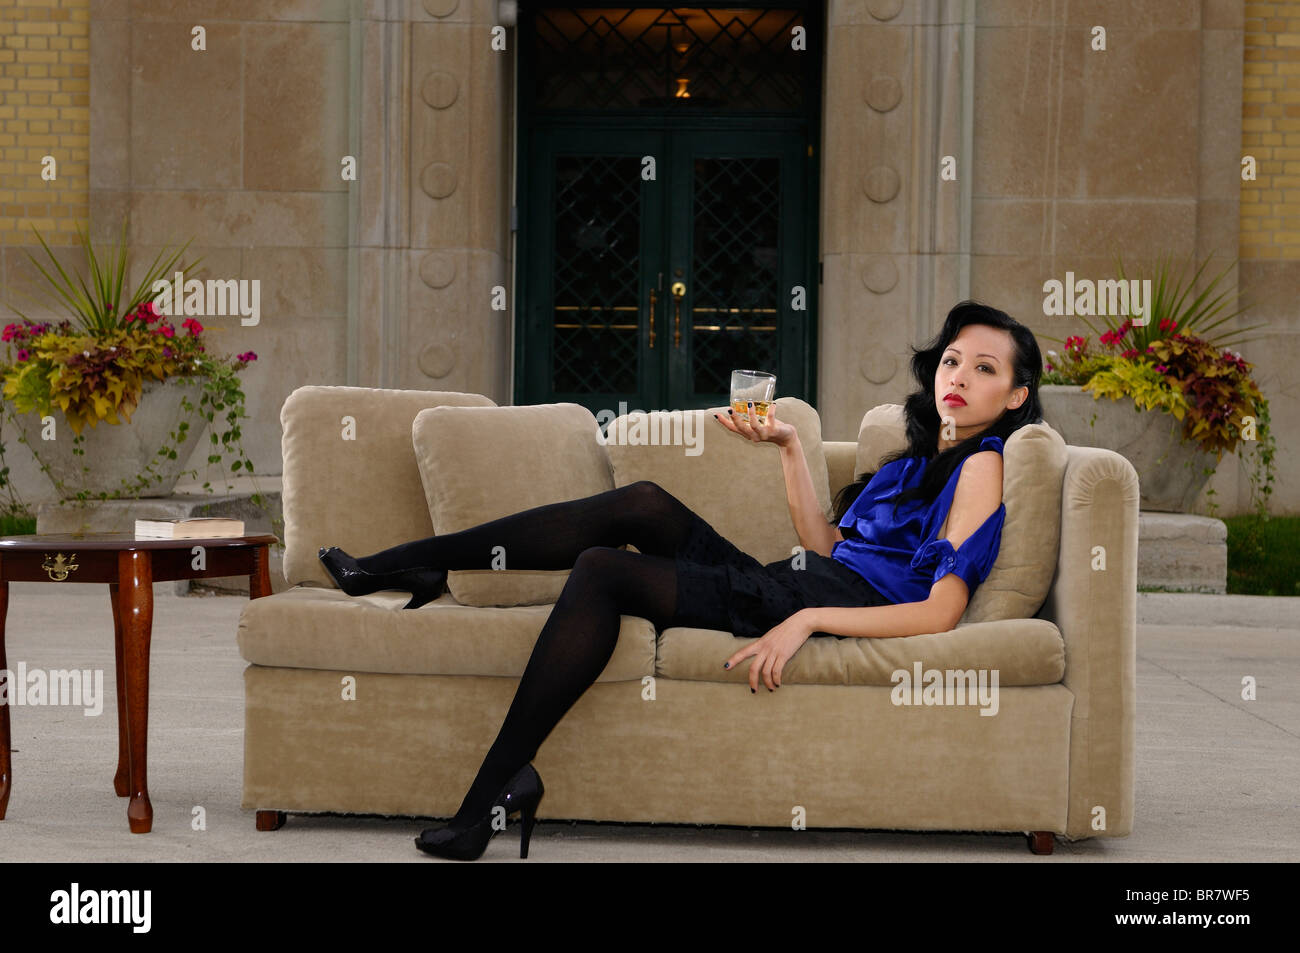 Attractive Asian Woman Reclining On A Couch At An Outdoor